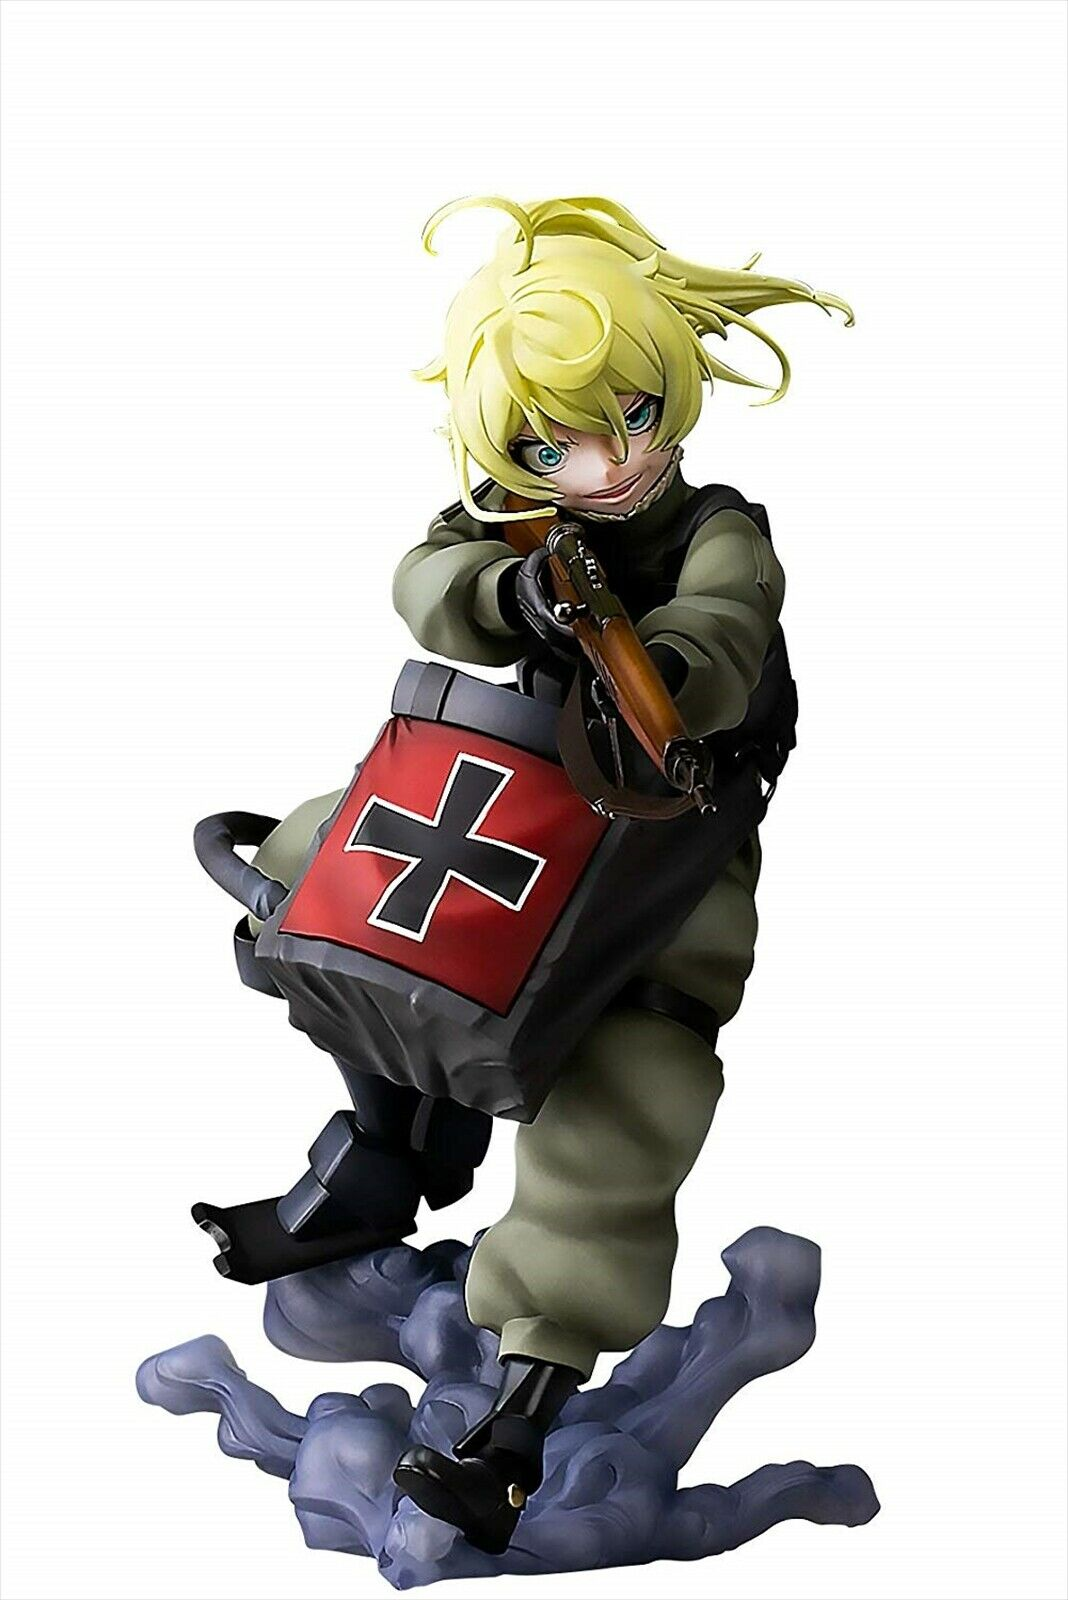 NEW Movie Youjo Senki Tanya Degurechaff 1 7 PULCHRA Japan